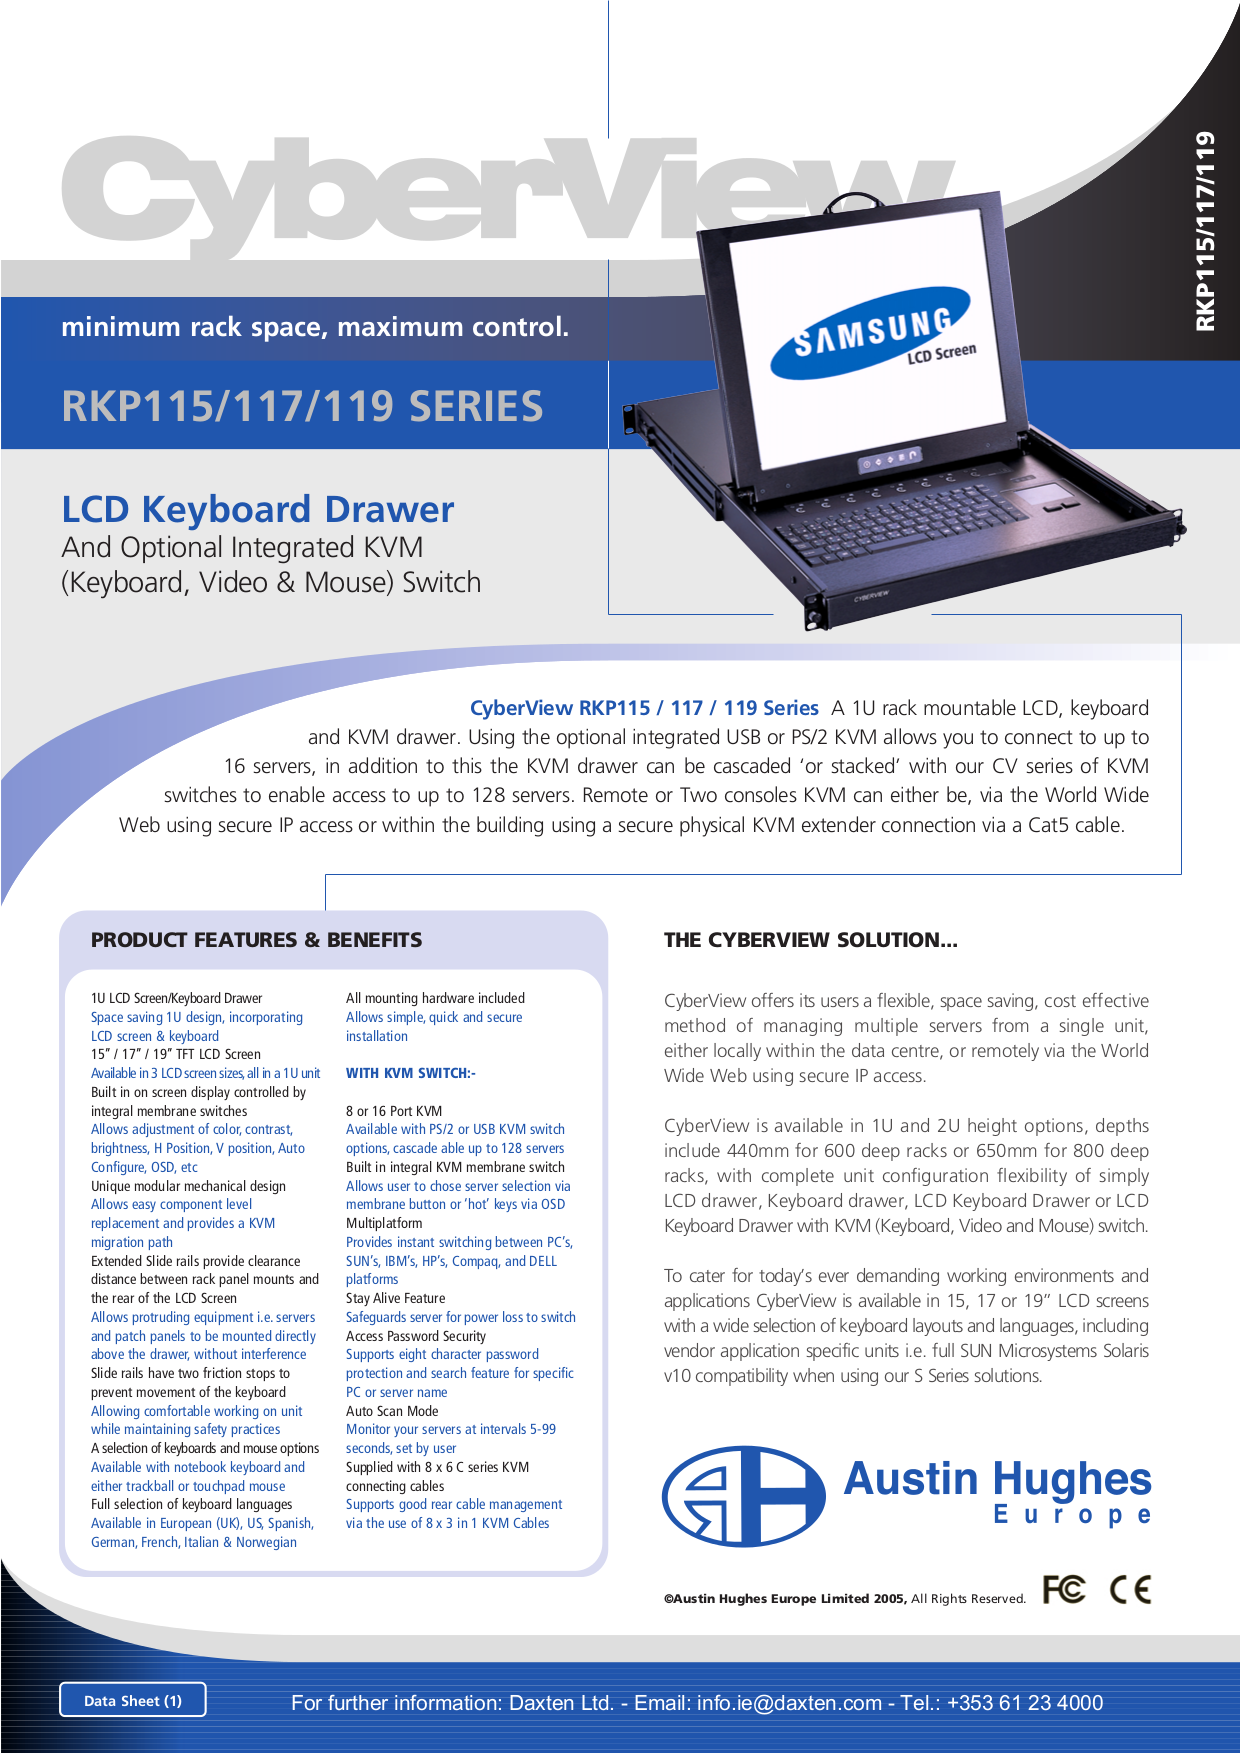 pdf for I-Tech Other RKP117-1602 Keyboard Drawers manual